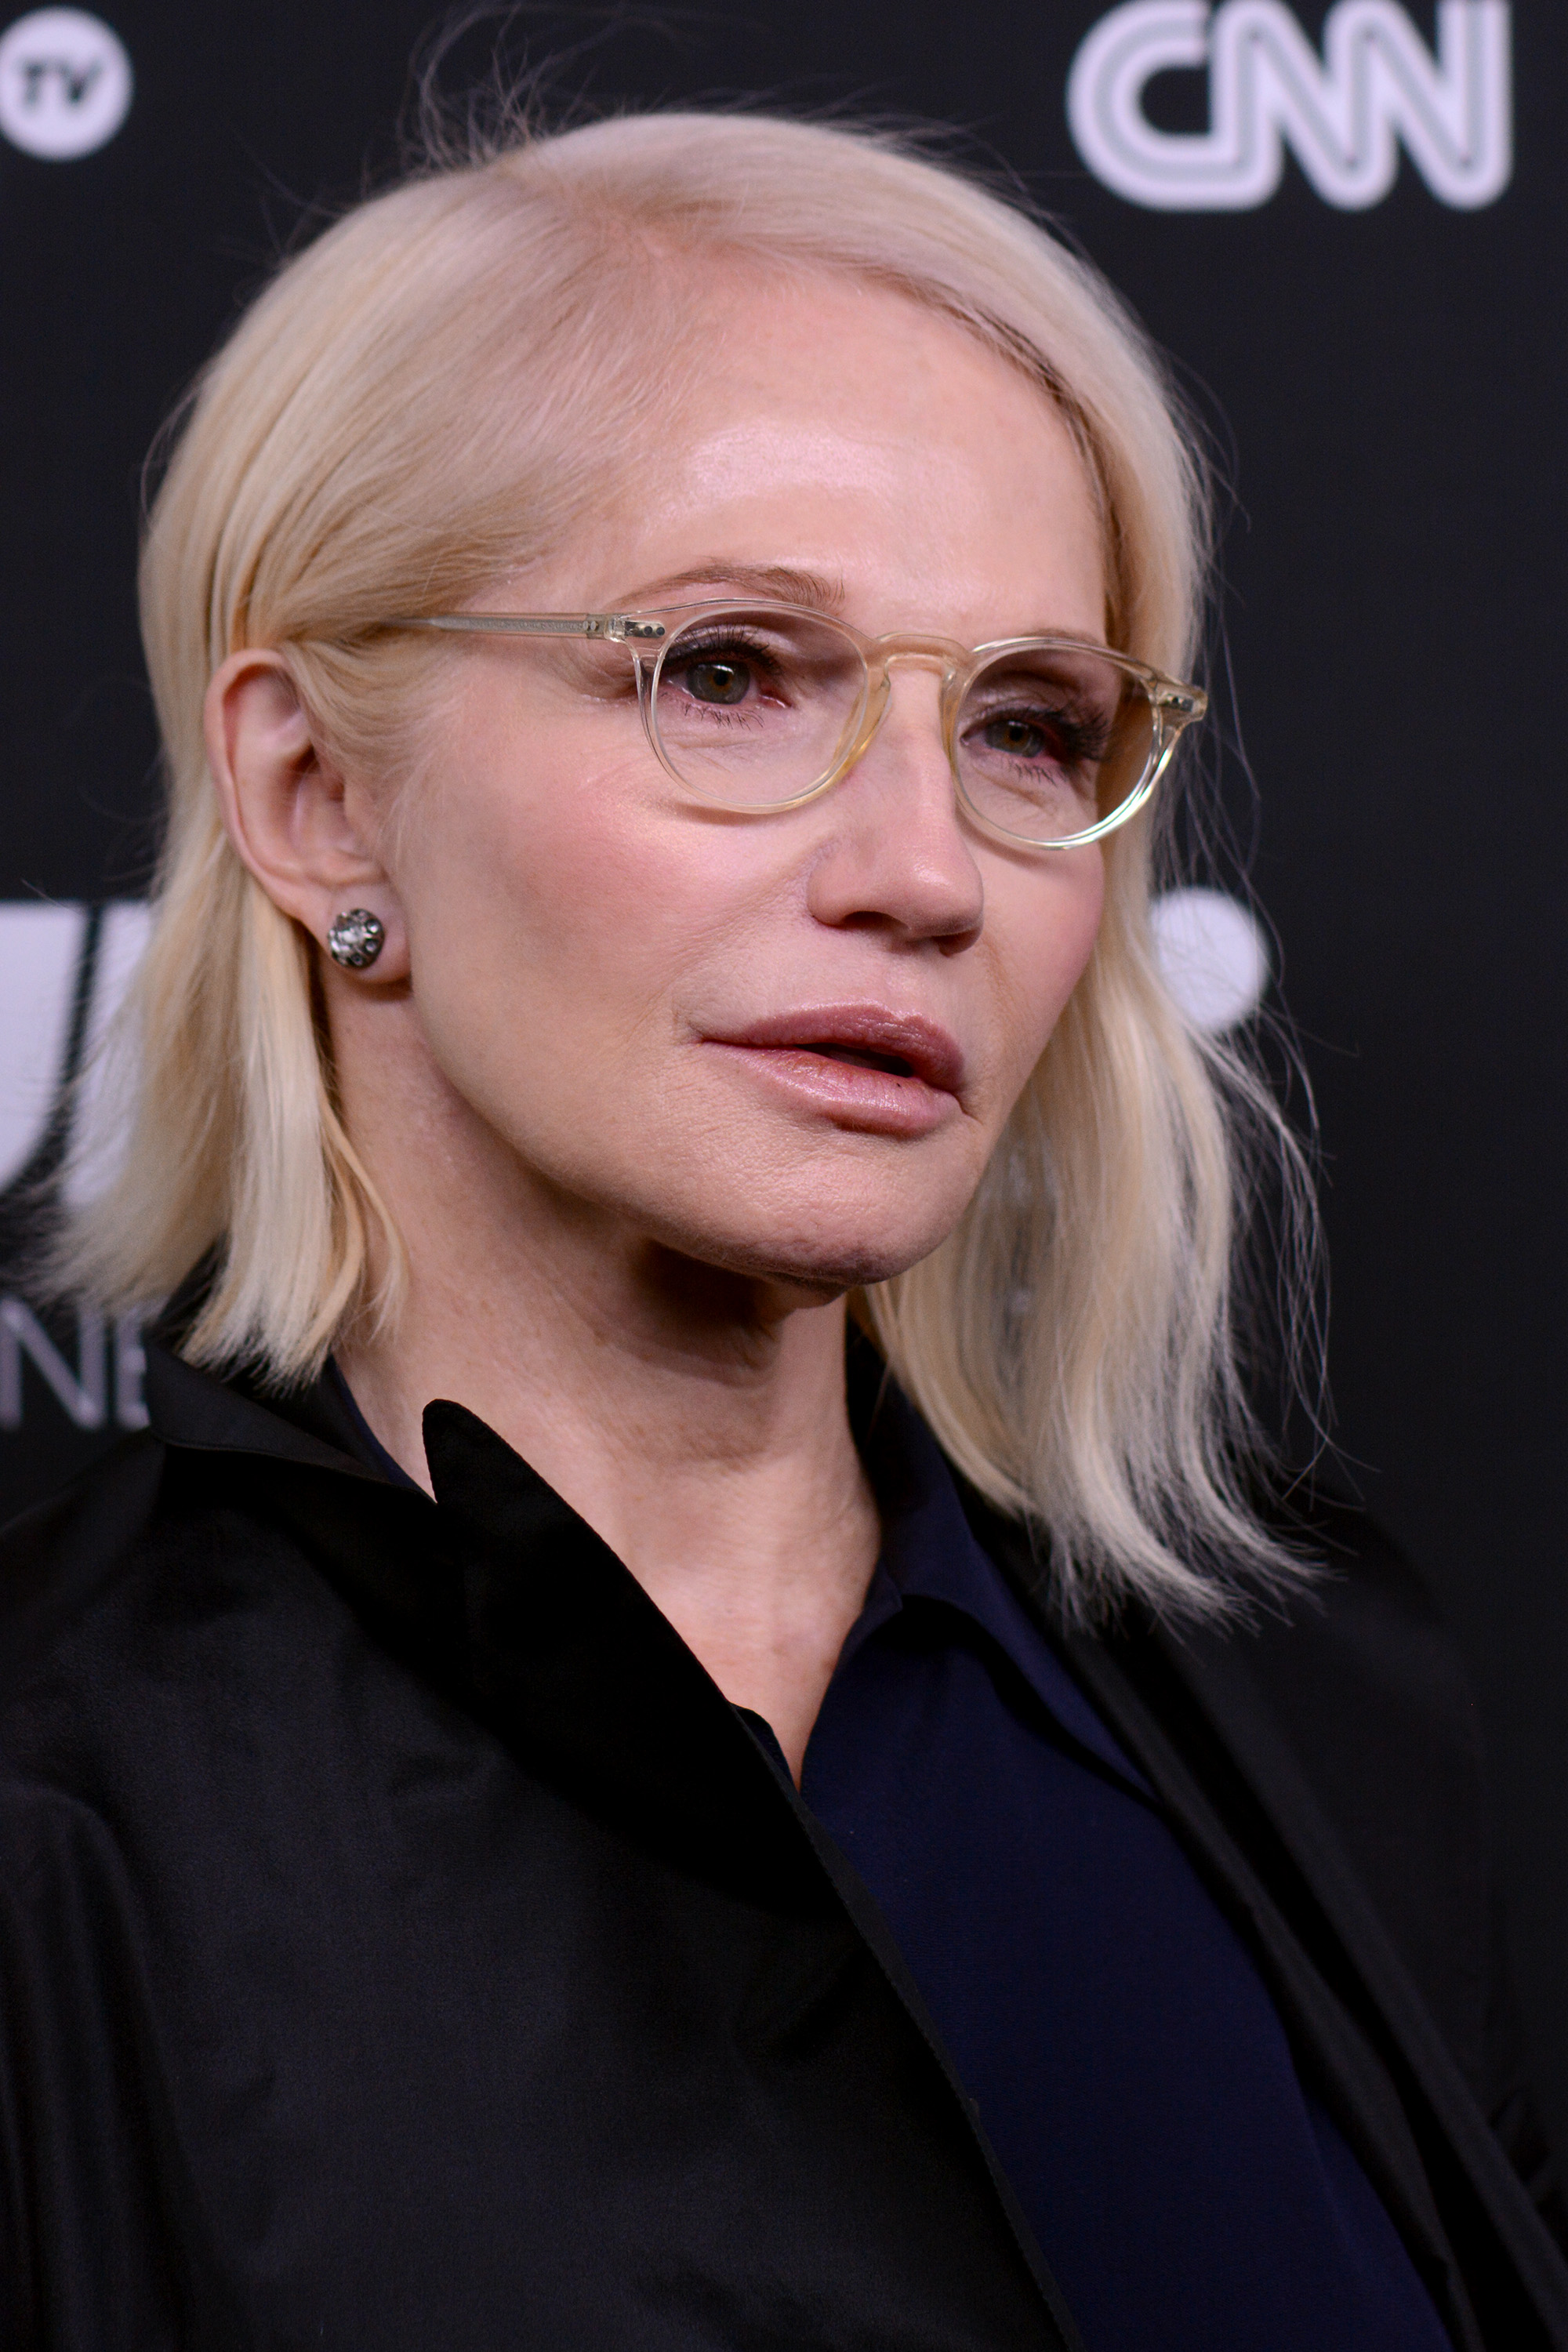 Ellen Barkin at the Turner Upfront Presentation in New York on May 18, 2016. (Ivan Nikolov/WENN.com)